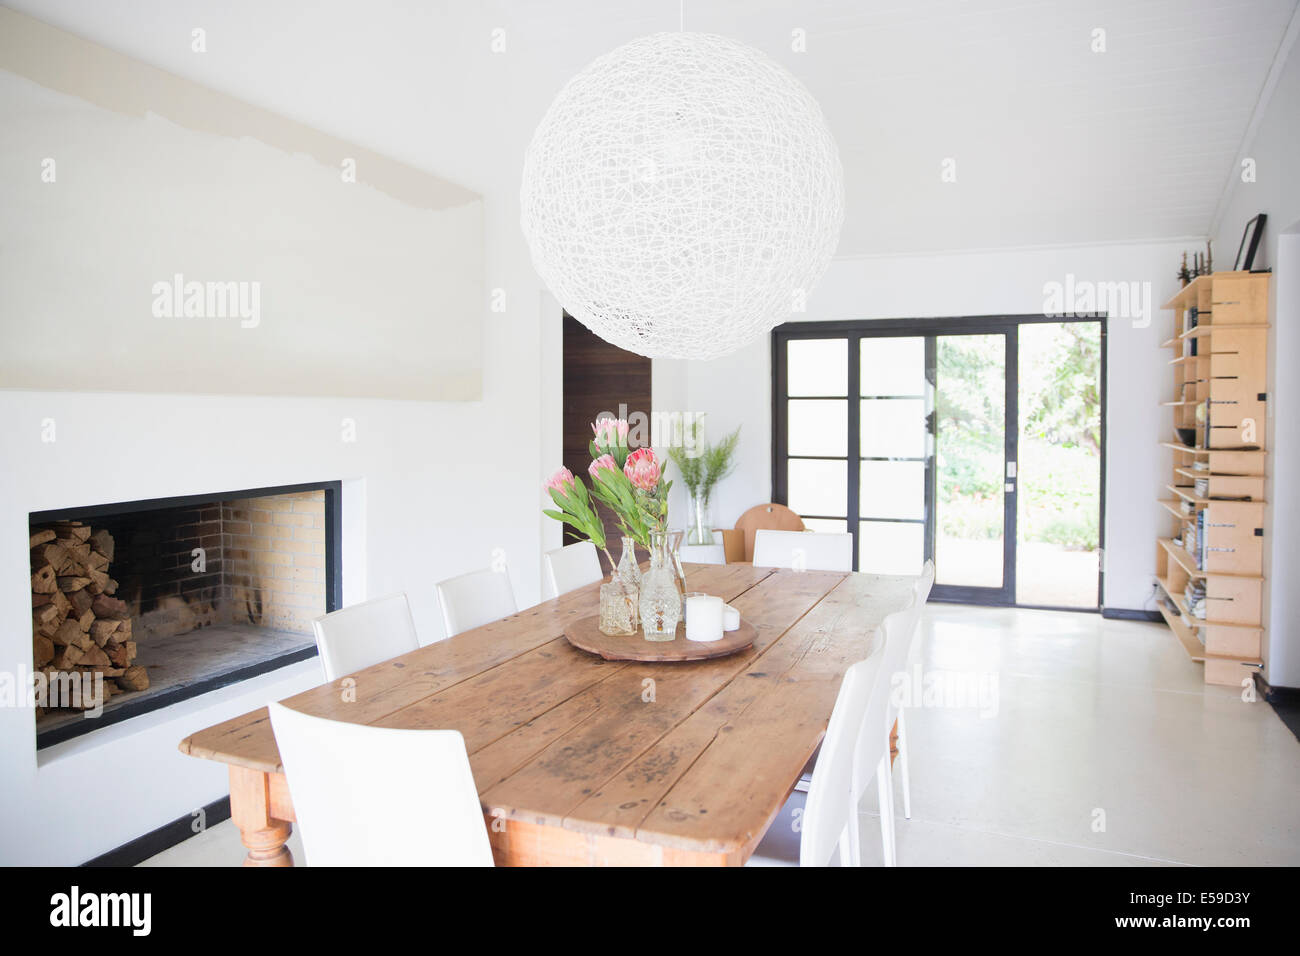 Dining table and light fixture in modern dining room - Stock Image